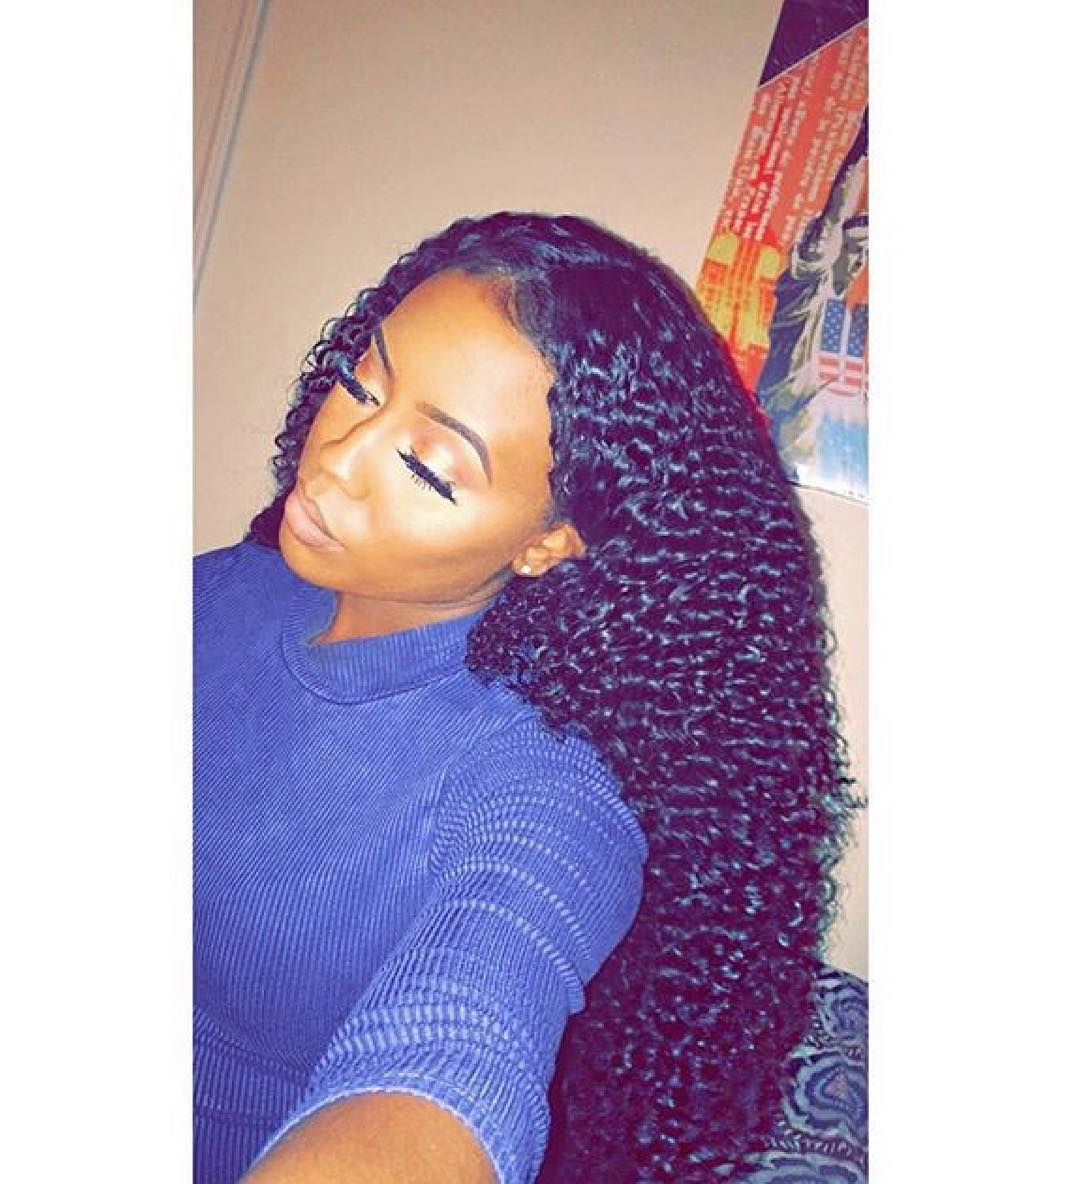 Brazilian Curly Reigns Supreme Four 4 Of Our Brazilian Curly